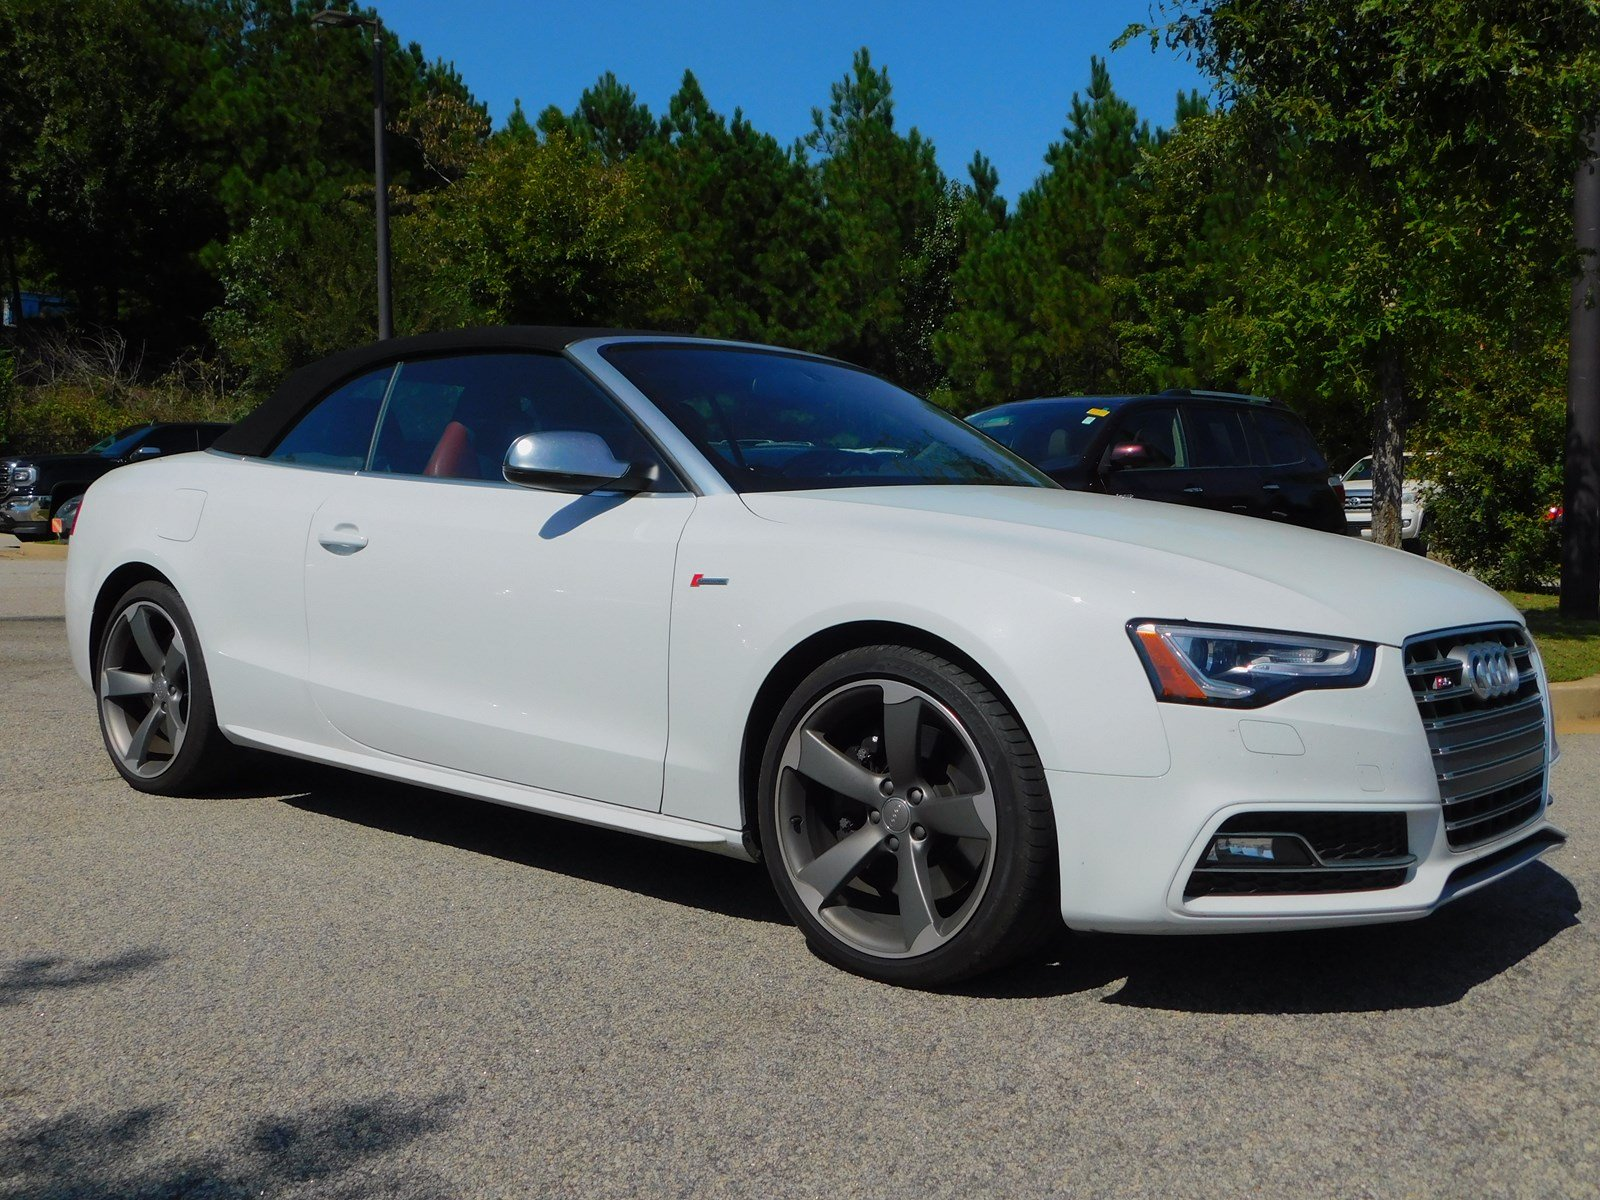 Photo 2017 Audi S5 Cabriolet 3.0 Cabriolet 3.0 TFSI